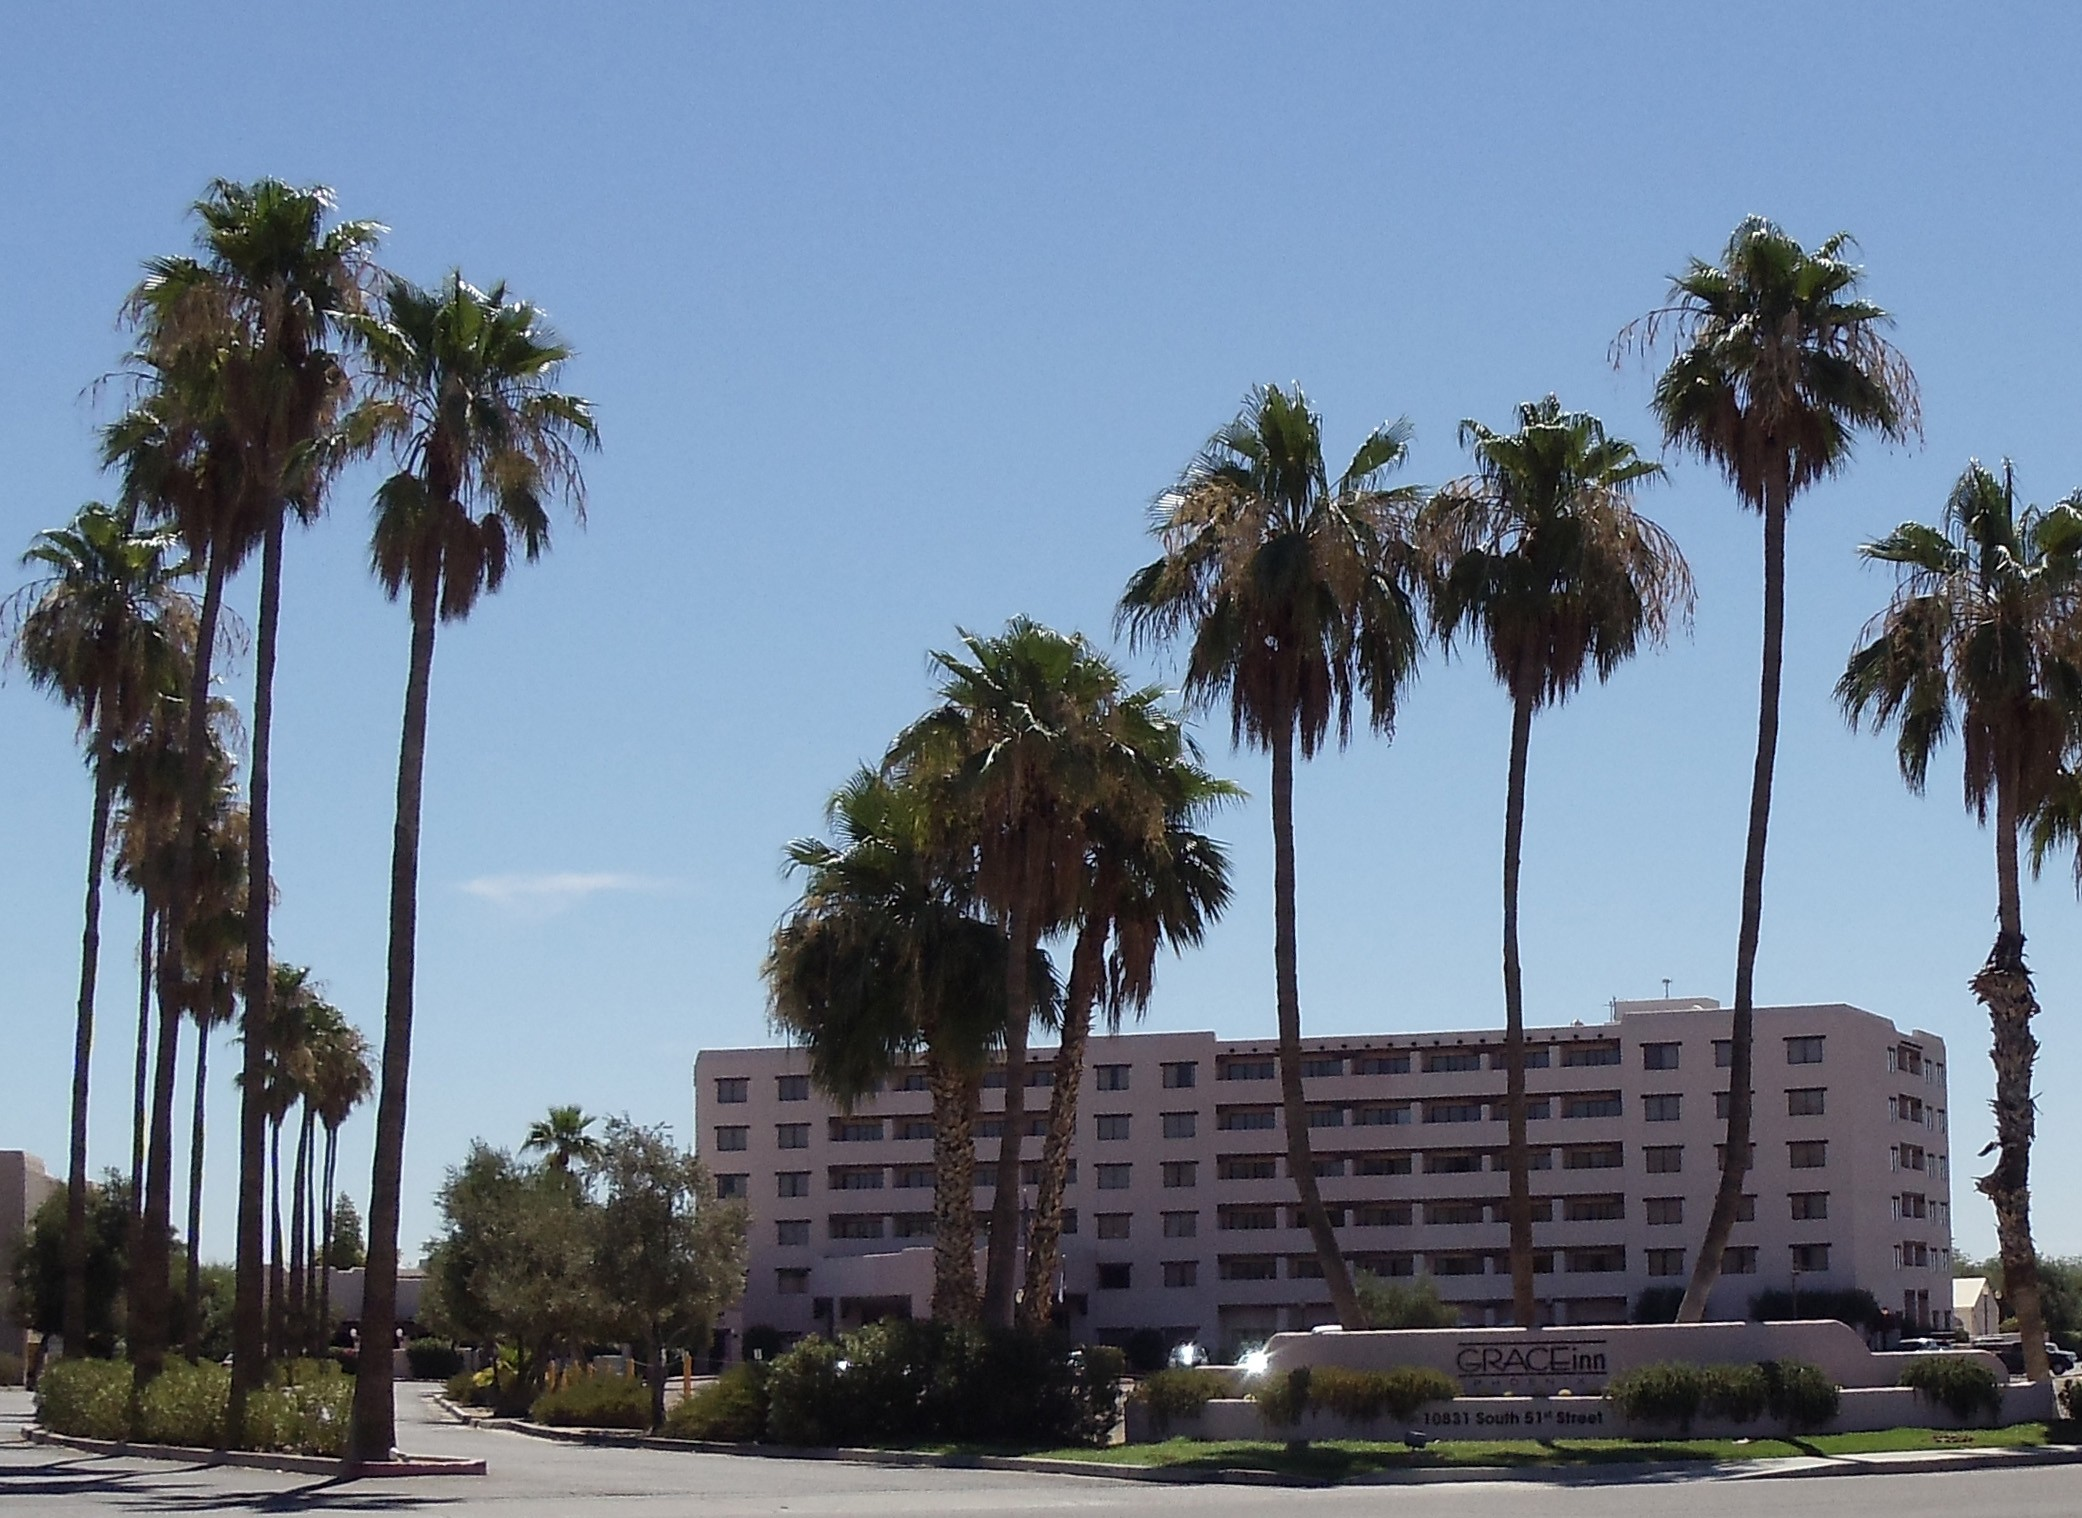 Assisted/Independent Senior Living Facility Opportunity 10831 South 51 st Street Phoenix AZ